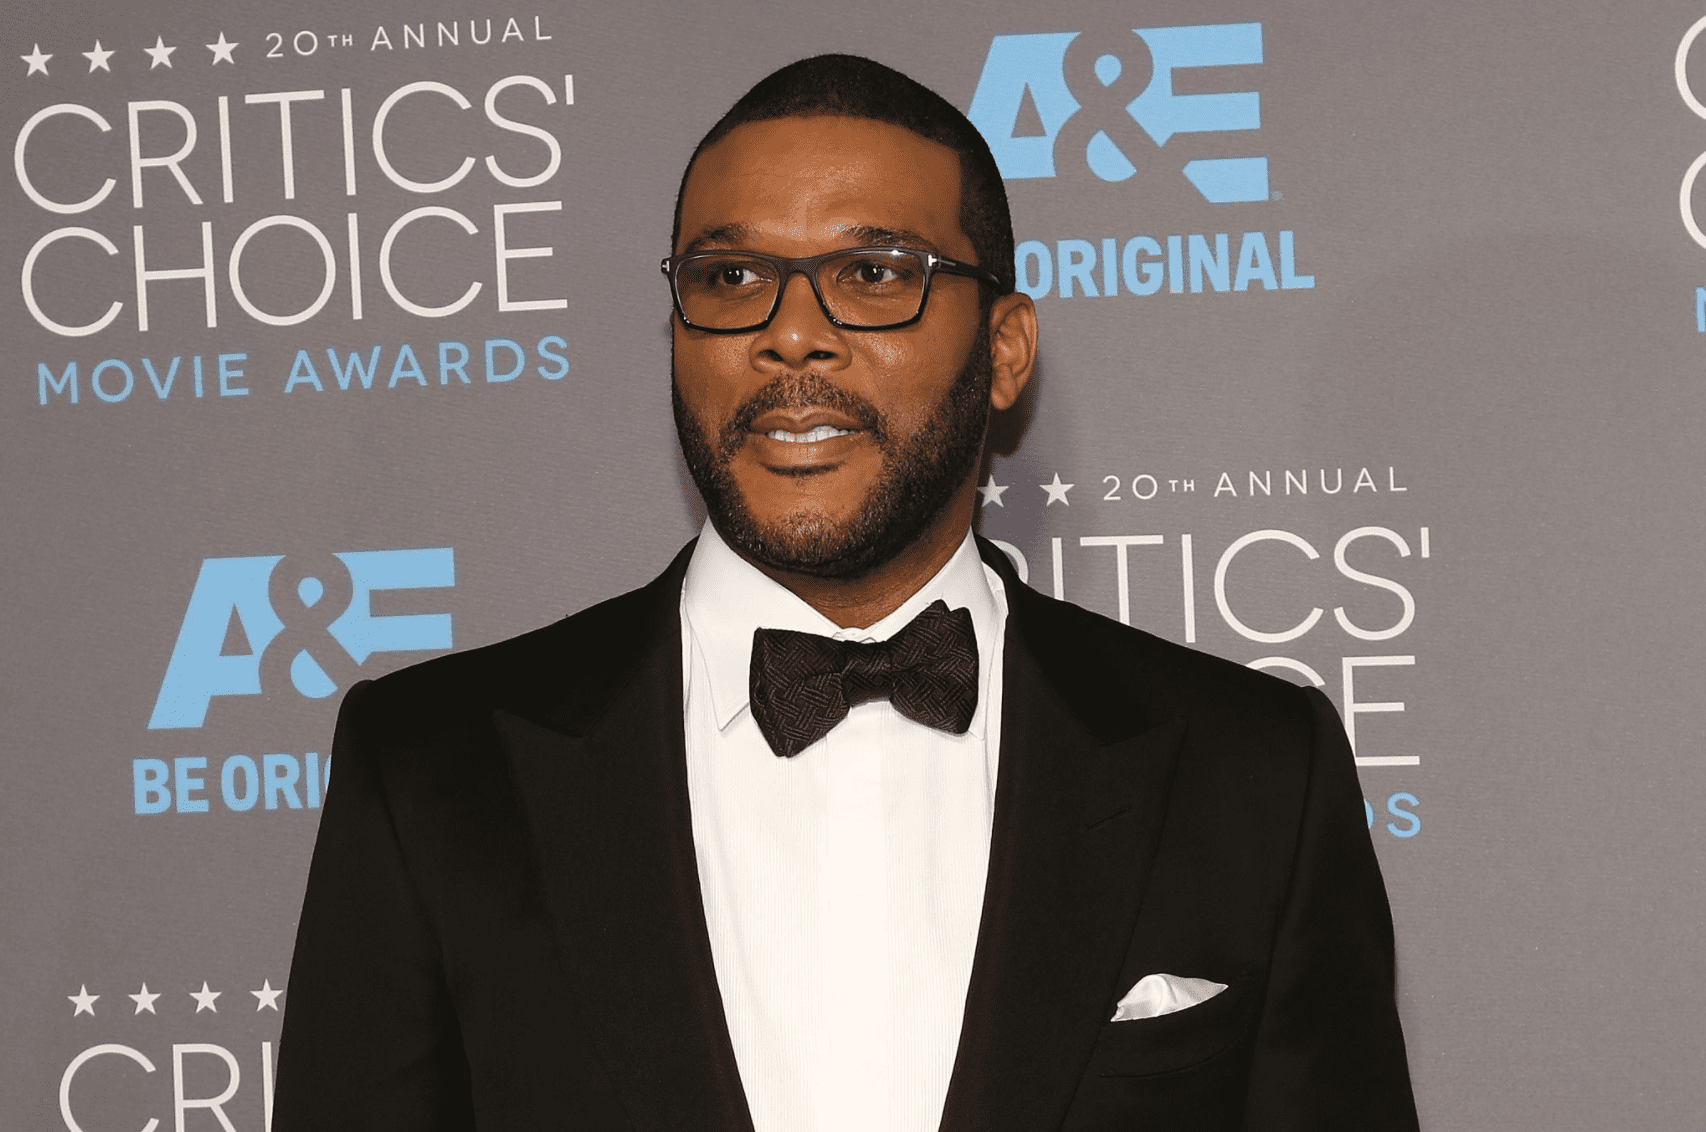 Tyler Perry at the 20th Annual Critics' Choice Movie Awards in 2015 in Los Angeles. | Source: Getty Images